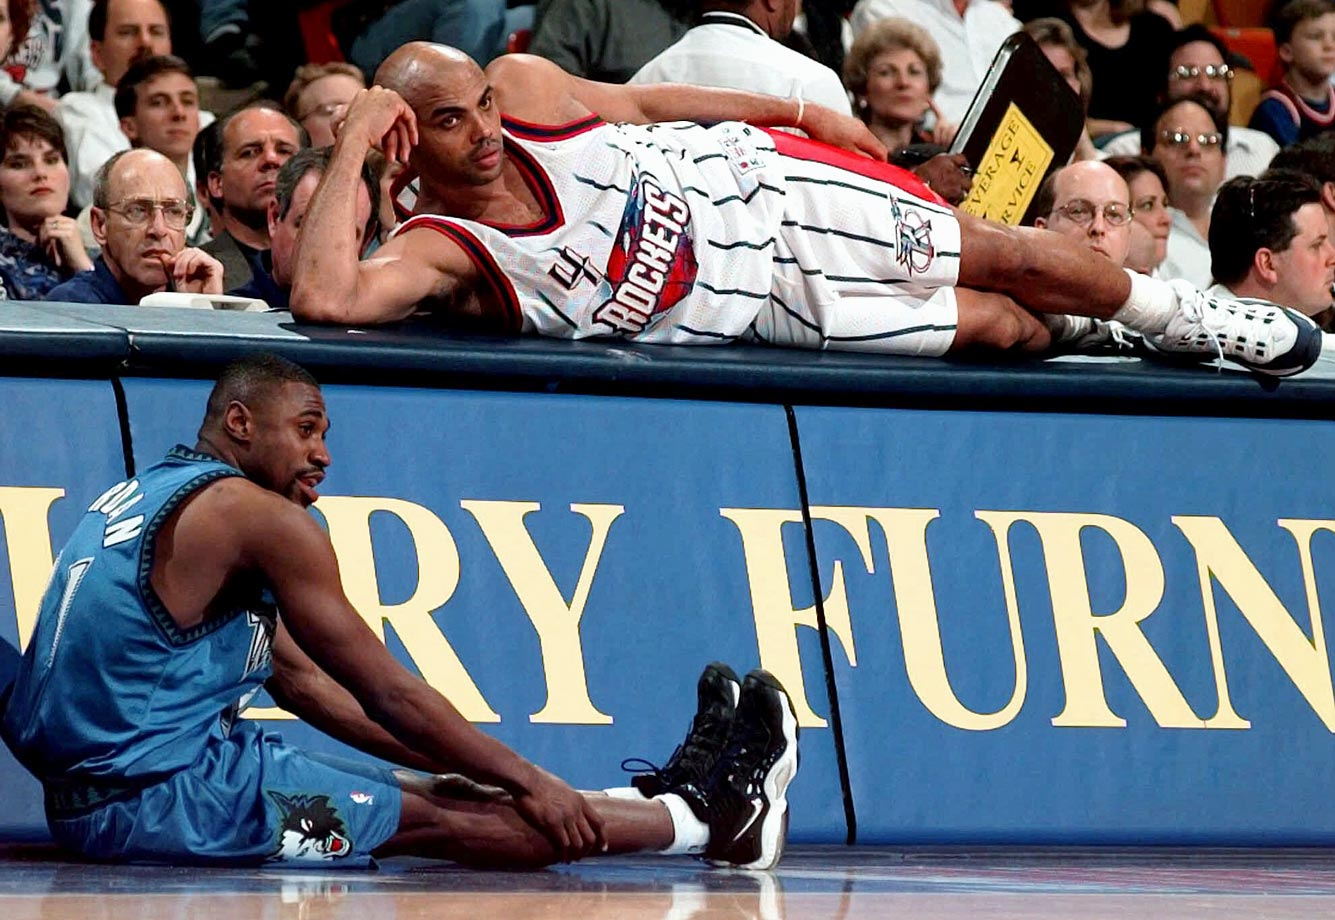 Charles Barkley lays alongside Reggie Jordan during a Rockets-Timberwolves game. Barkley was hampered by injuries in Houston, missing 145 games in four seasons before retiring in 2000.